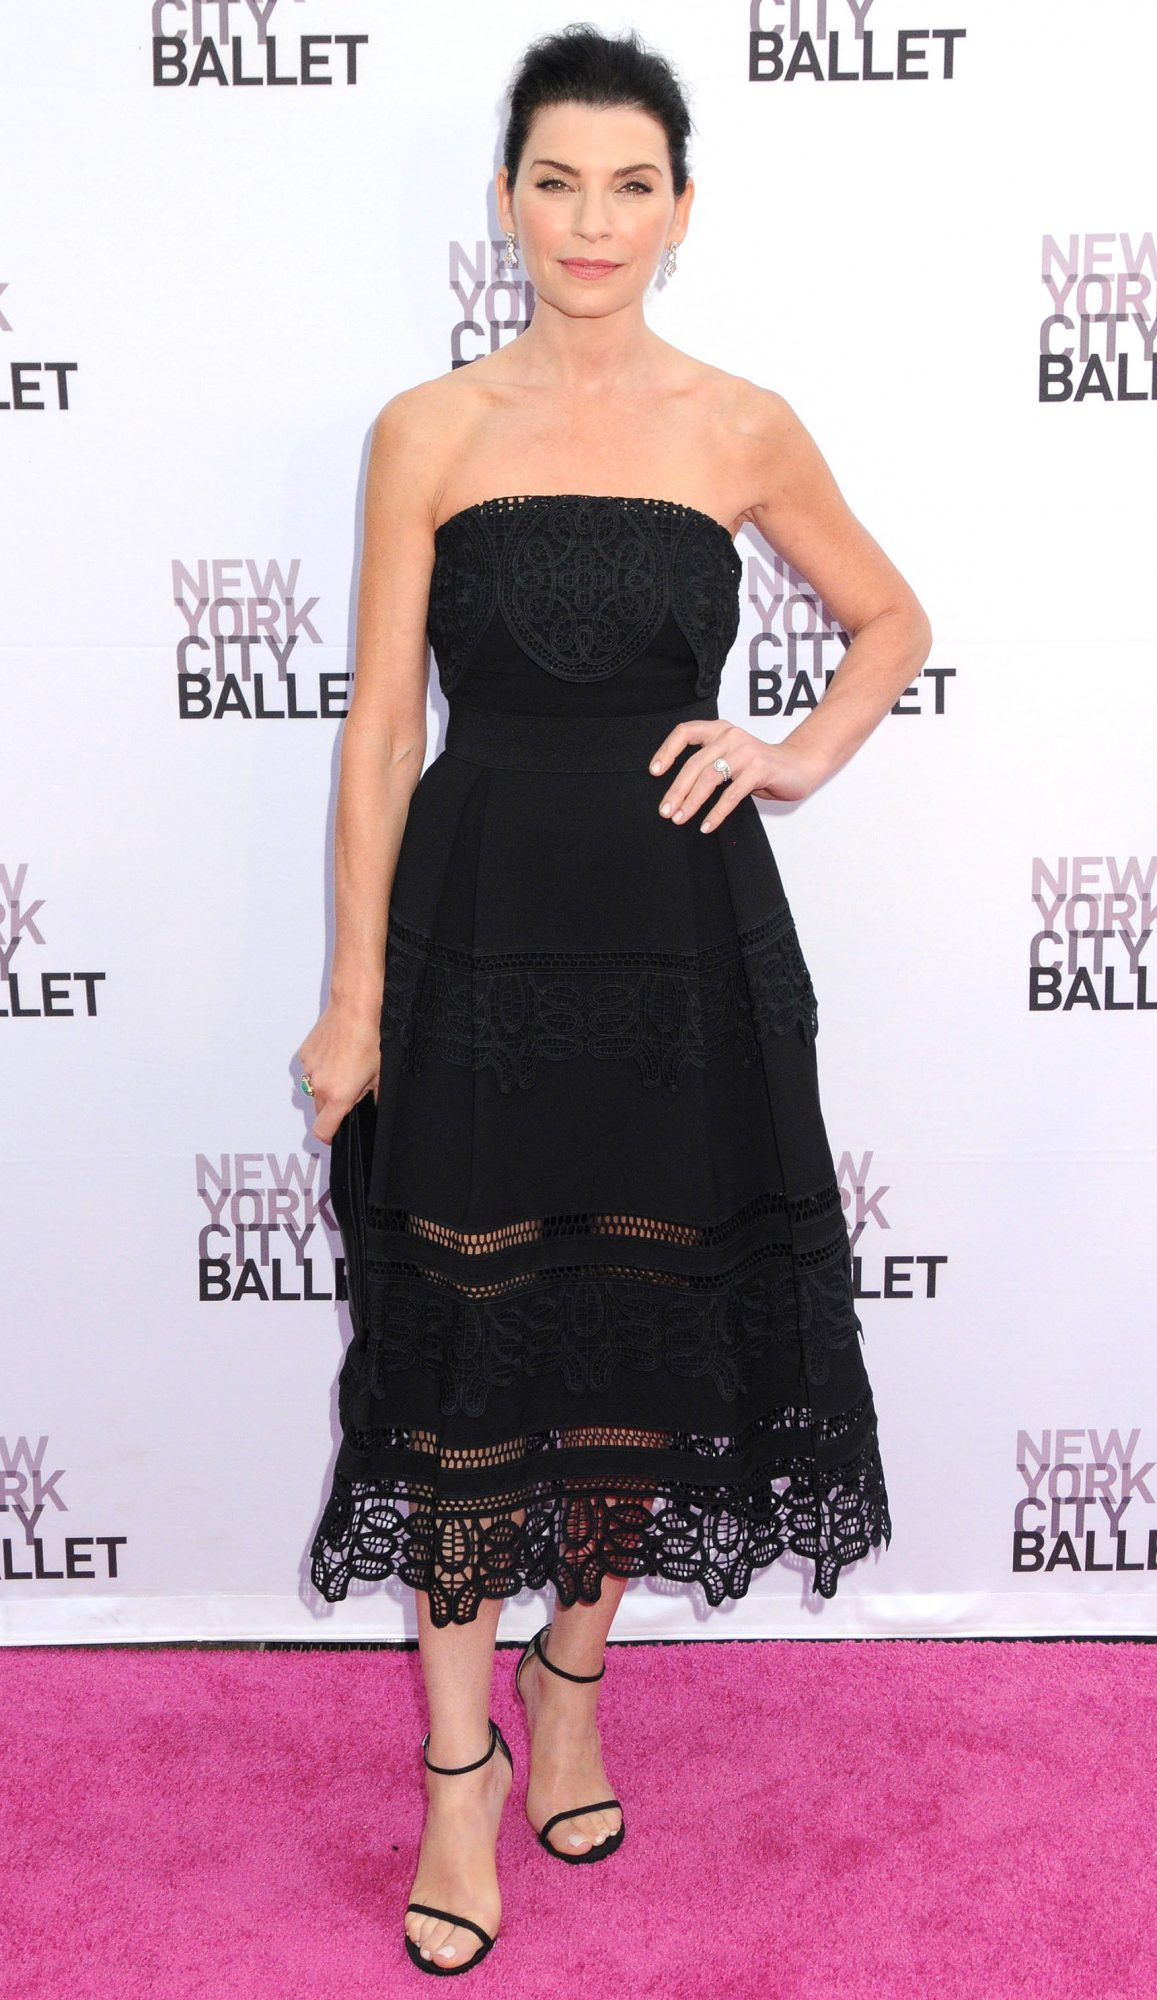 Celebrities arrive for NYC Ballets Fifth Annual Fall Fashion Gala in New York